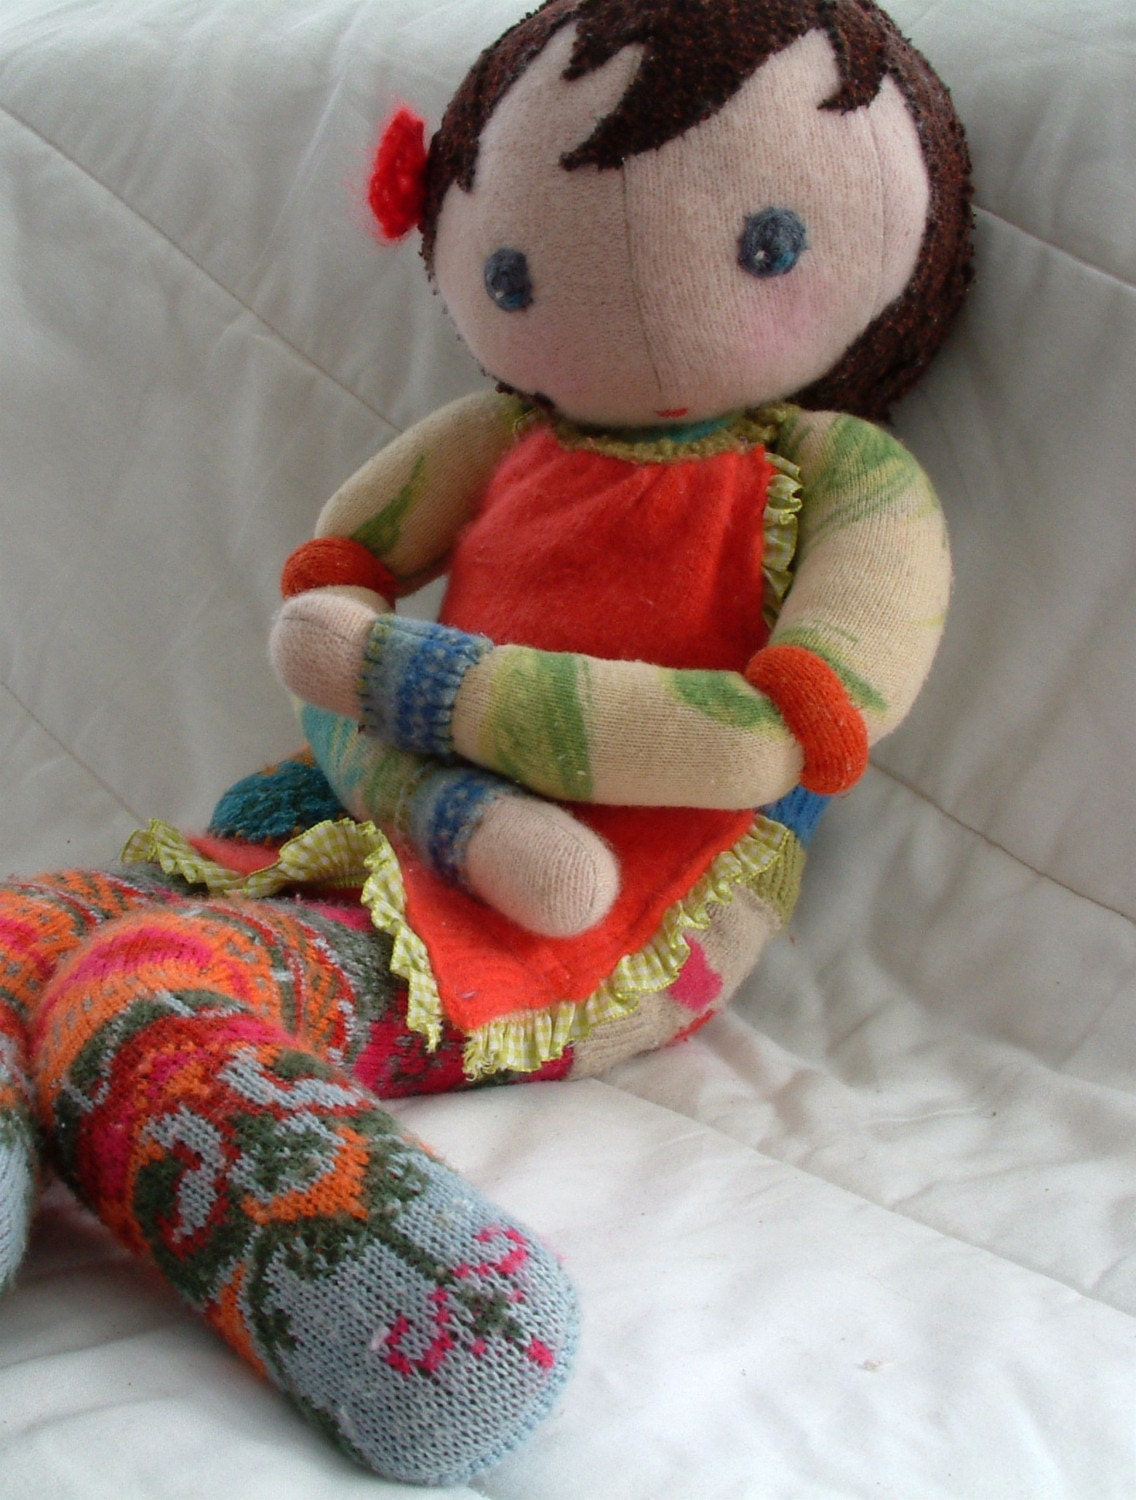 waldorf doll felted recycled sweaters stuffed with wool-taking custom orders